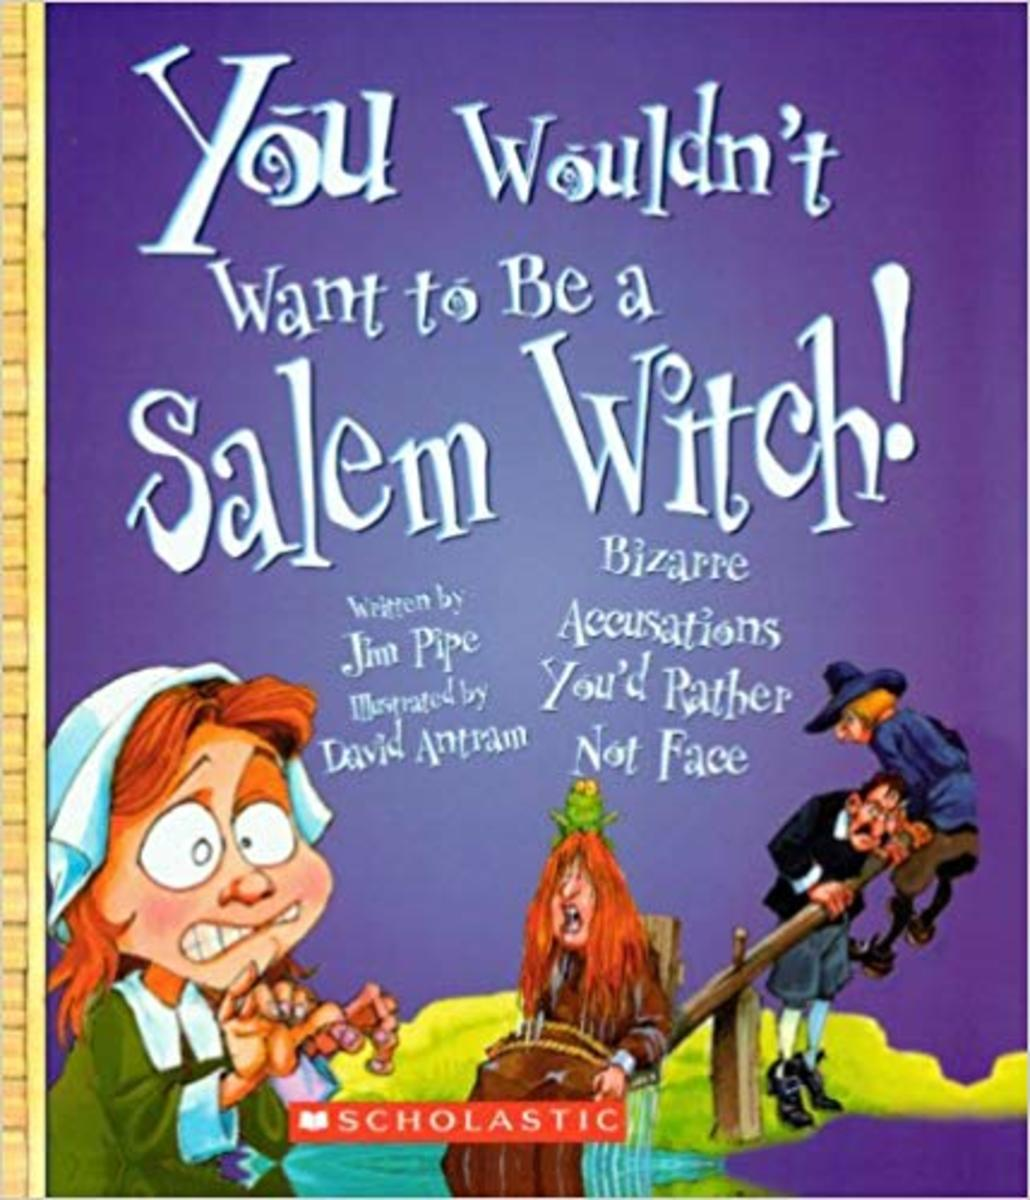 You Wouldn't Want to Be a Salem Witch!: Bizarre Accusations You'd Rather Not Face by Jim Pipe